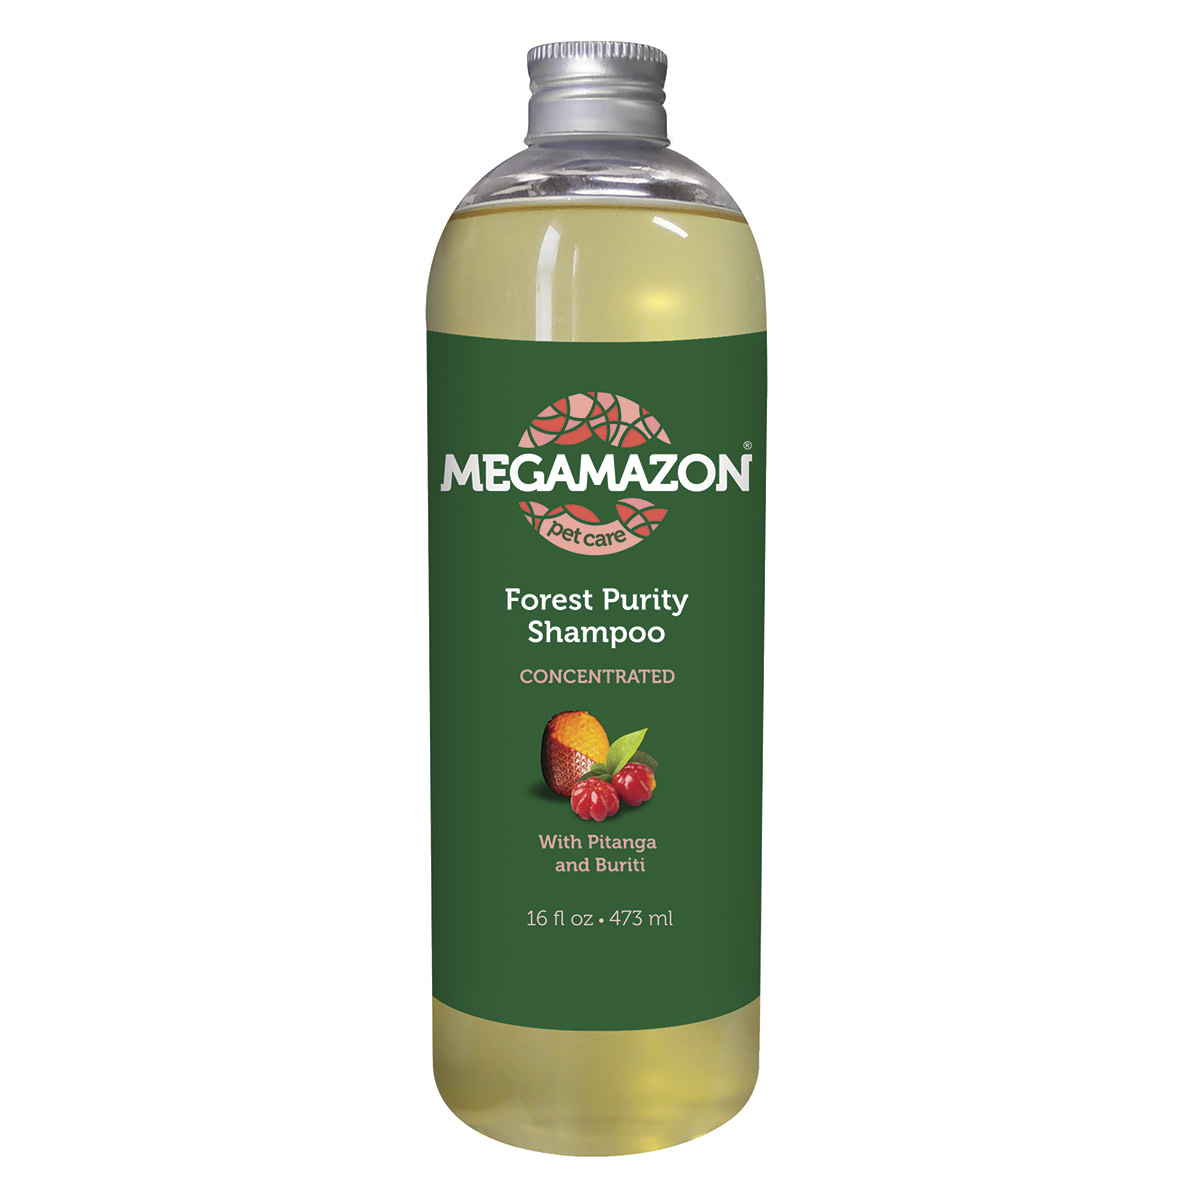 Buy Megamazon Forest Purity Shampoo for dogs 16 oz